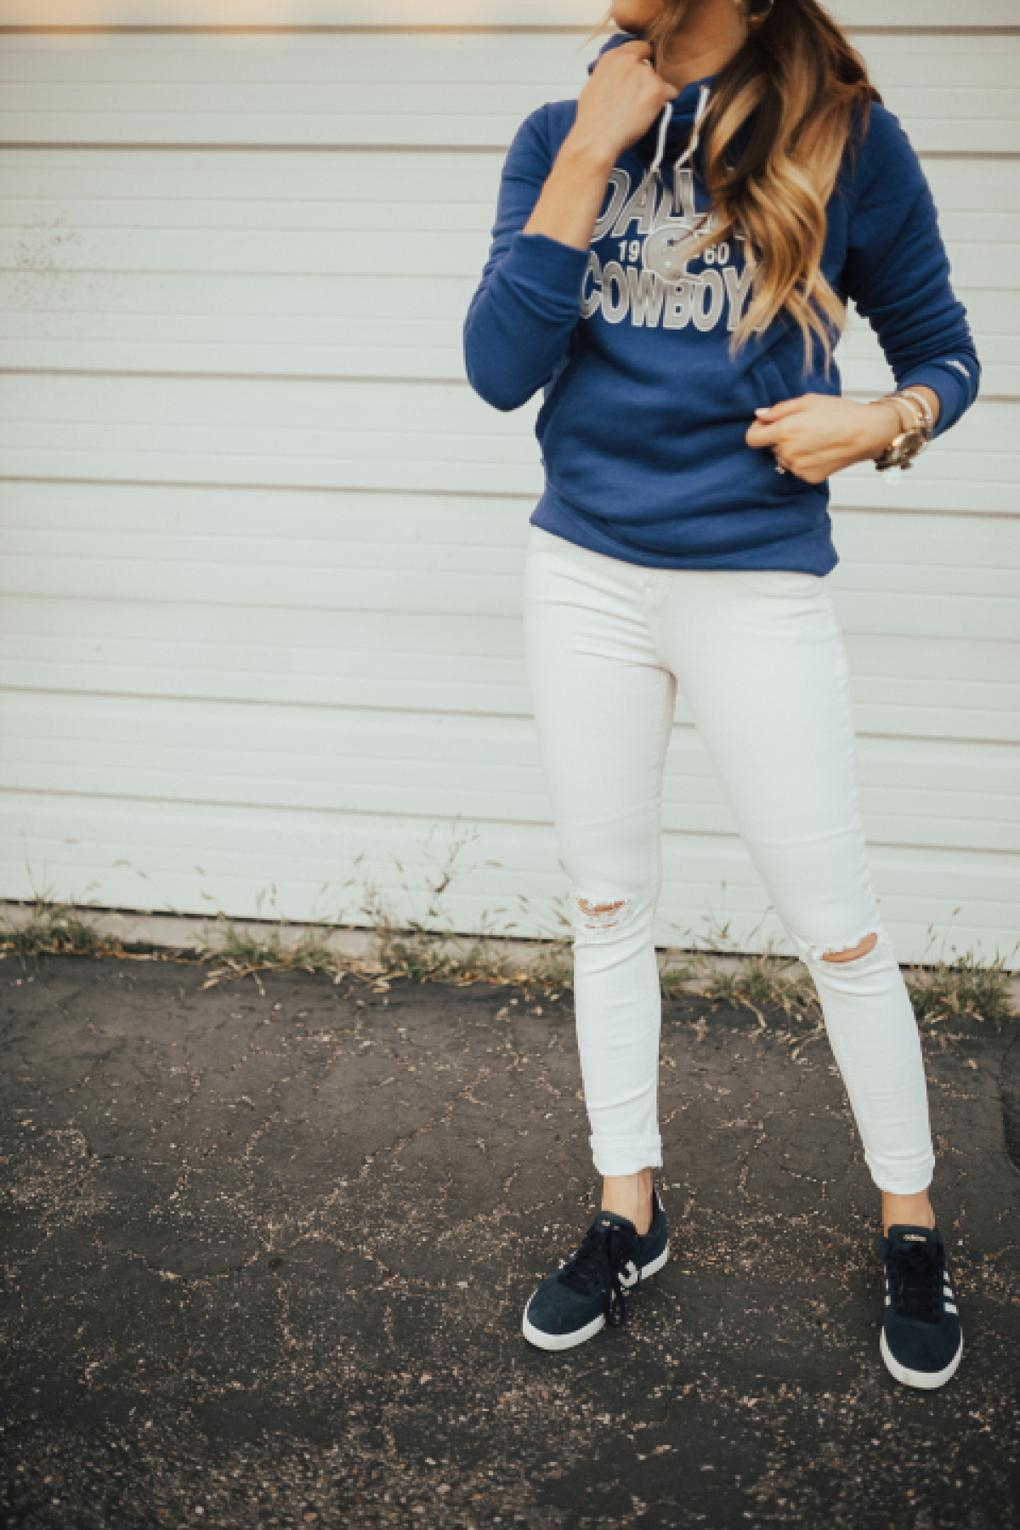 Dallas Cowboys Sweater: Staying Cozy for Football Season by Utah fashion blogger Dani Marie